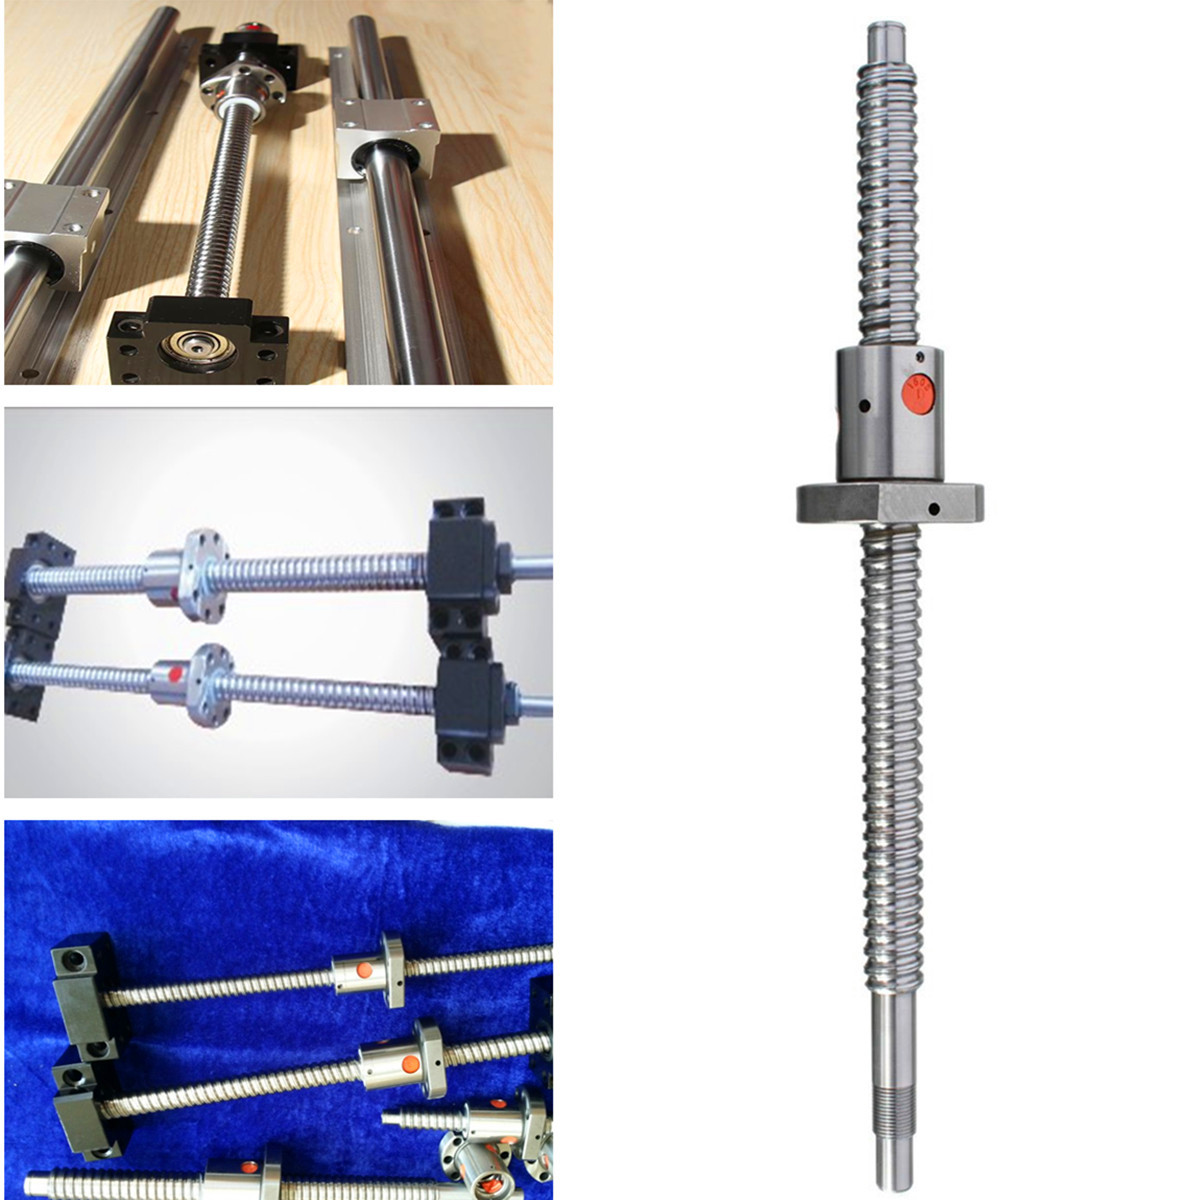 Ball Screw Rolled C7-1605 ballscrew 300mm Bearing Process Ball Reduce Friction with one flange single ball nut for CNC partsBall Screw Rolled C7-1605 ballscrew 300mm Bearing Process Ball Reduce Friction with one flange single ball nut for CNC parts